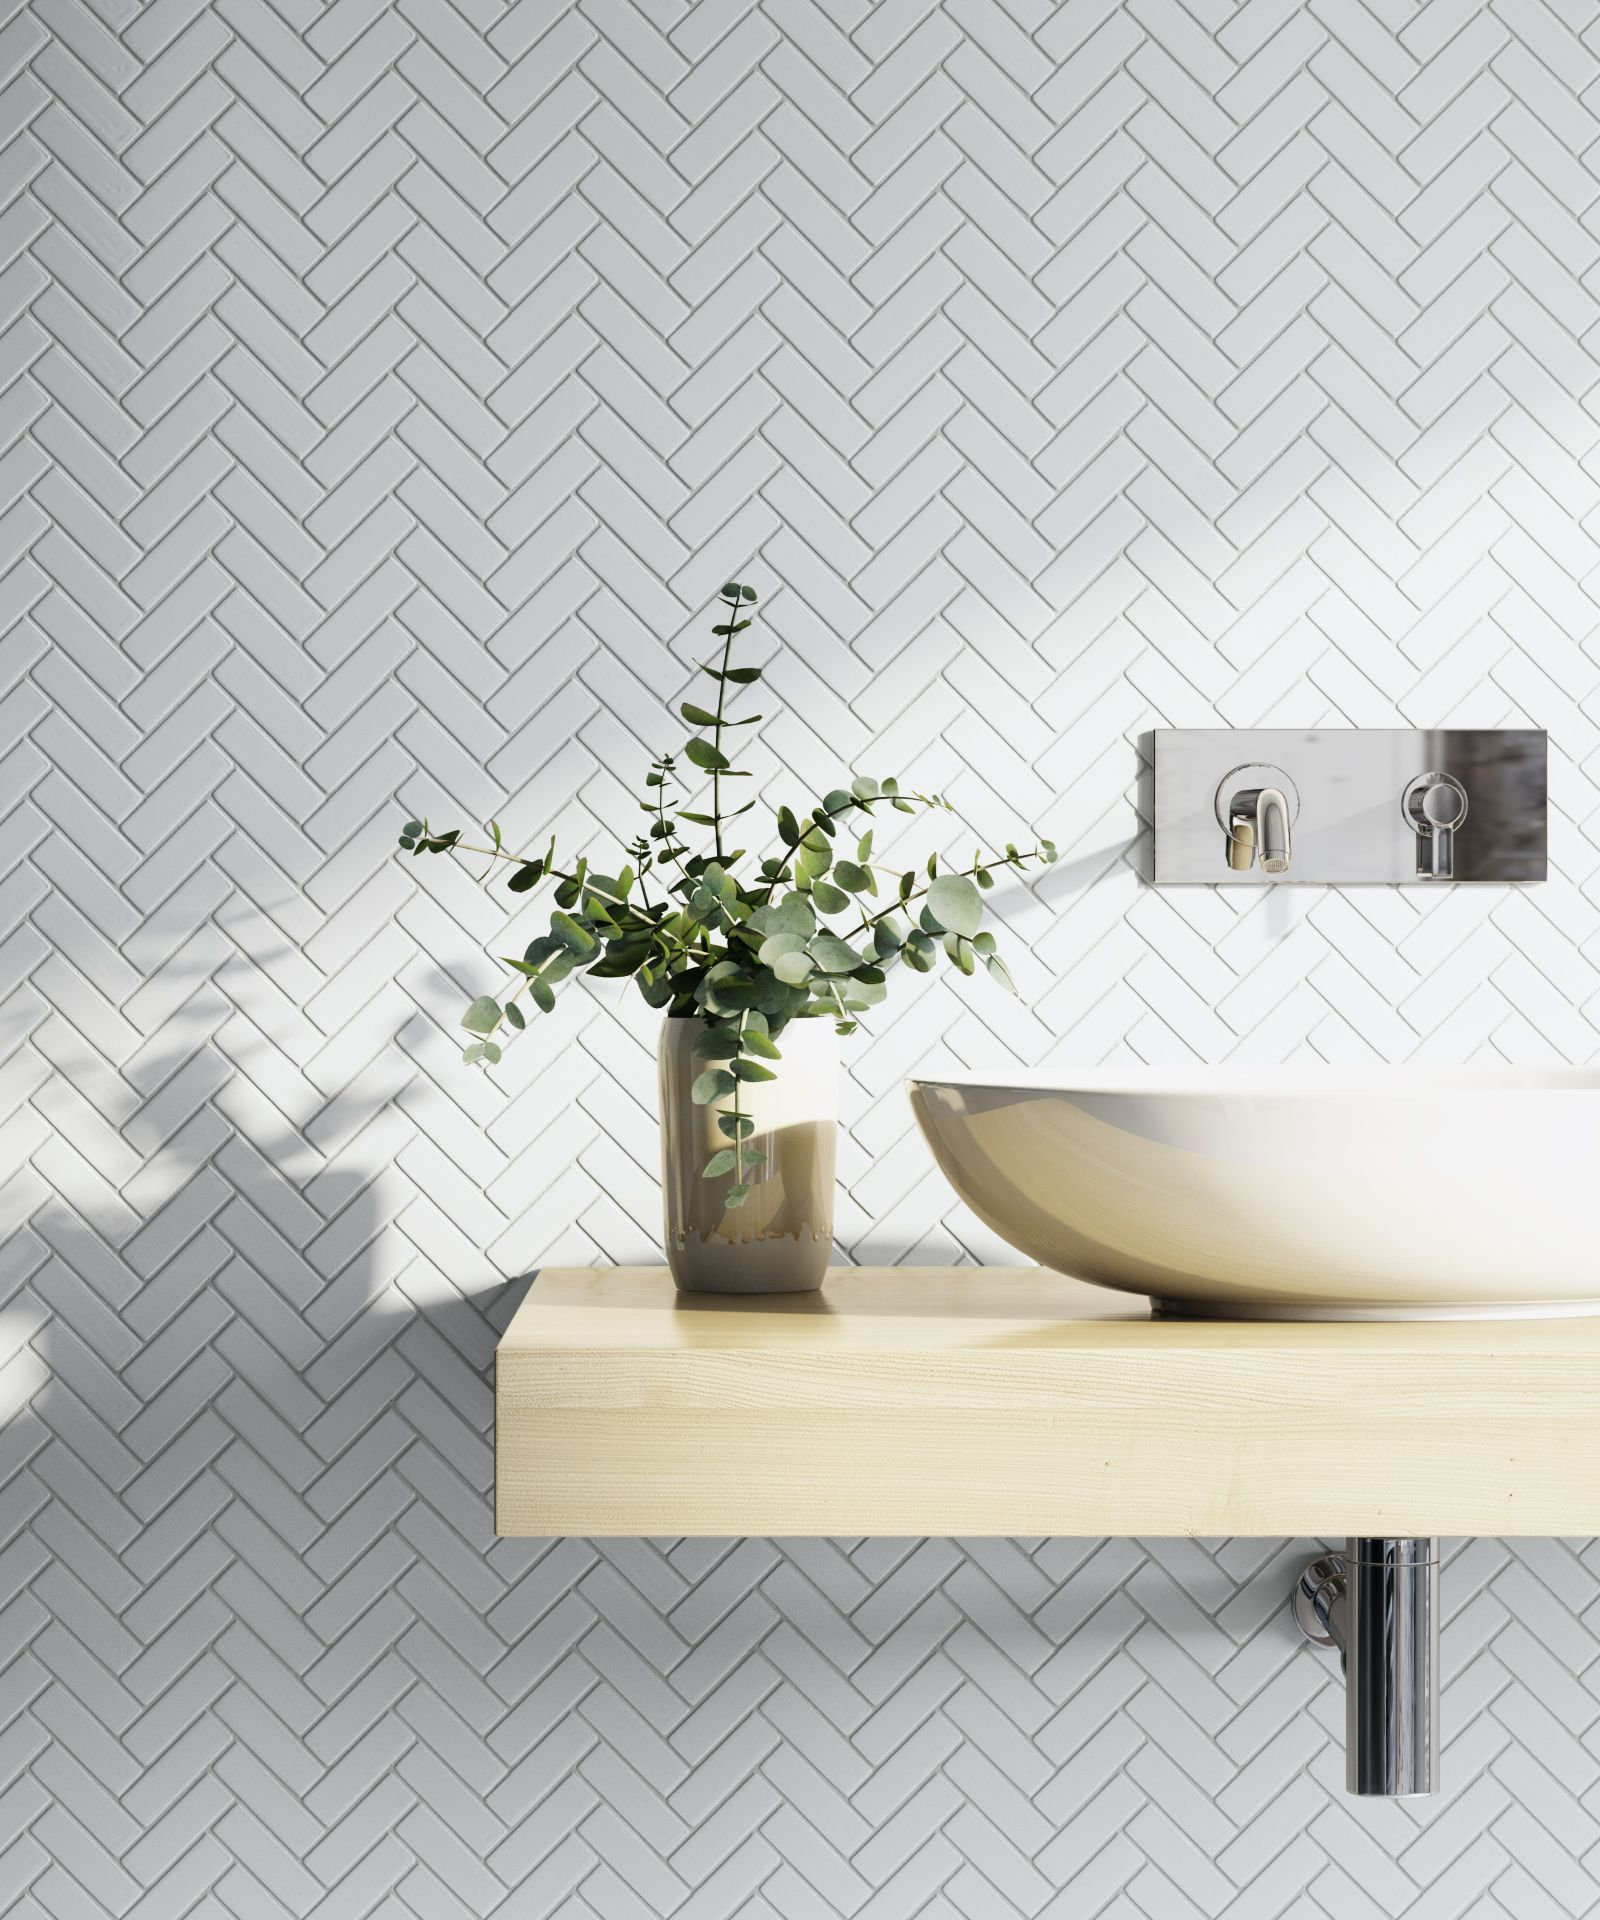 Wellington Herringbone Gloss Mosaic White Tile | TileCloud Bathrooms ...